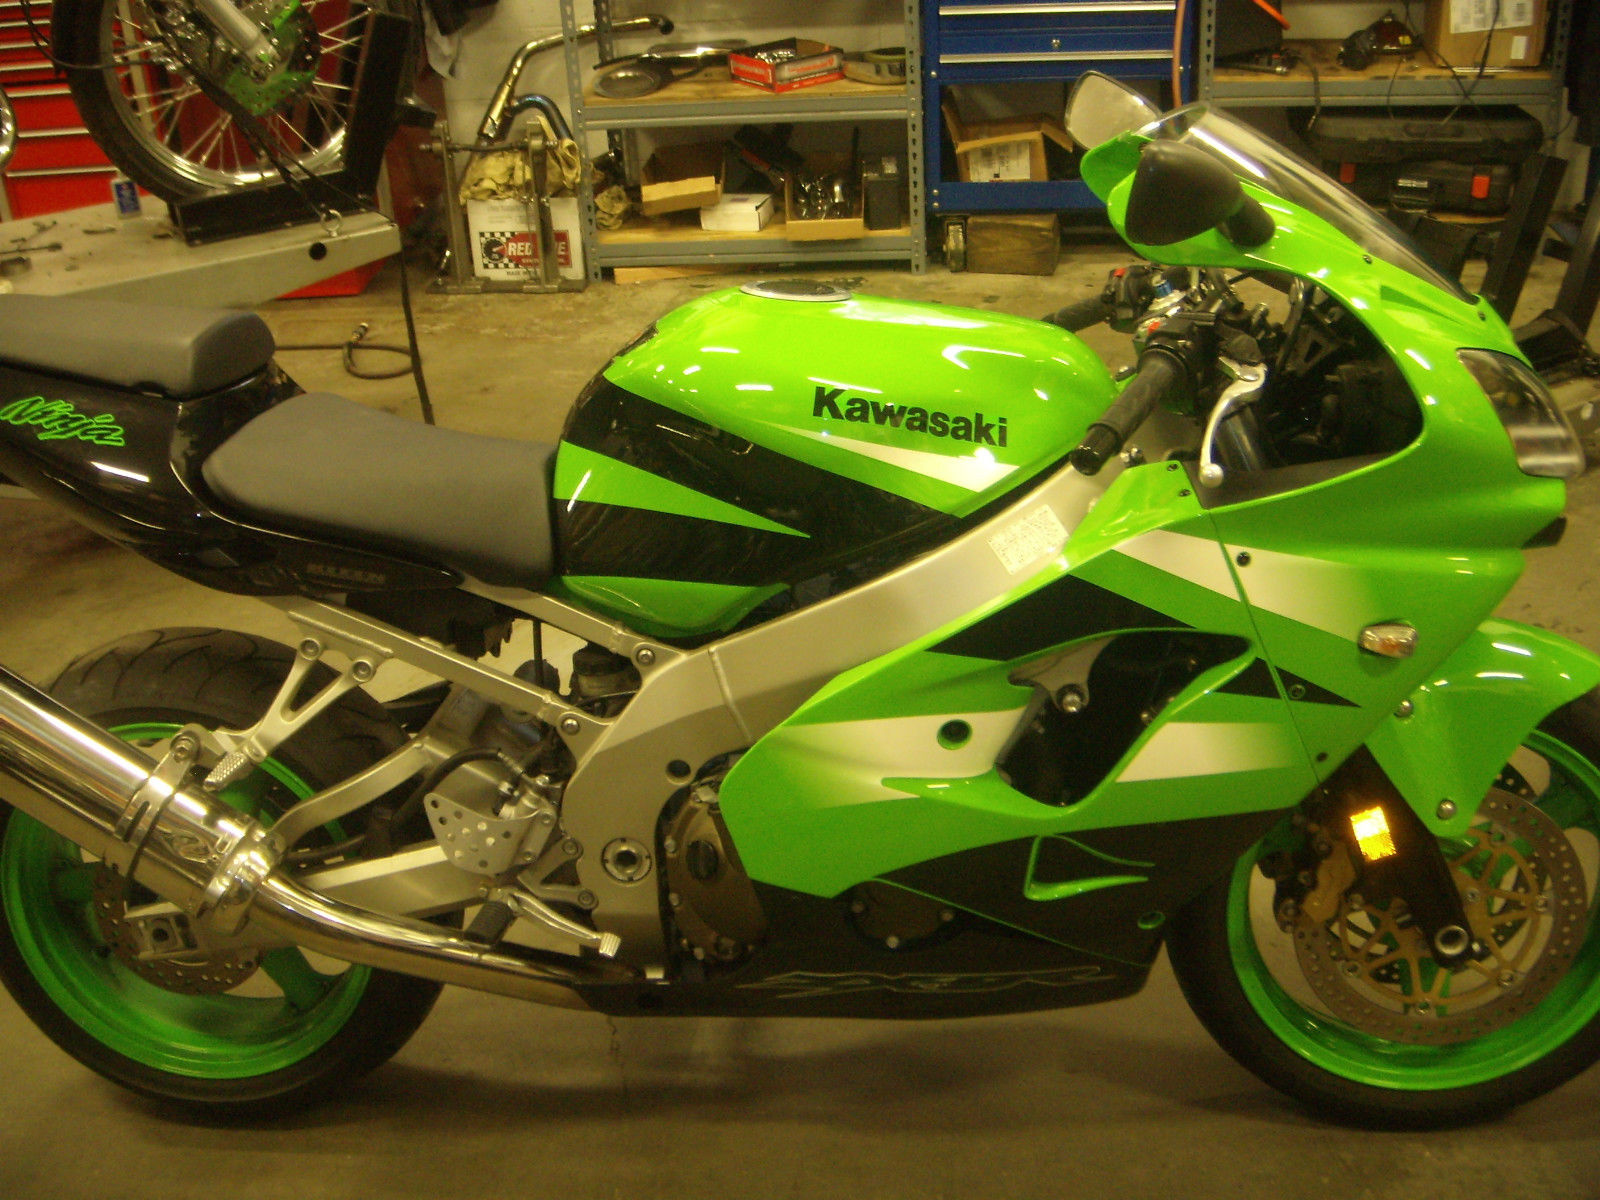 900cc Of Green 2002 Kawasaki Ninja Zx 9r Rare Sportbikes For Sale